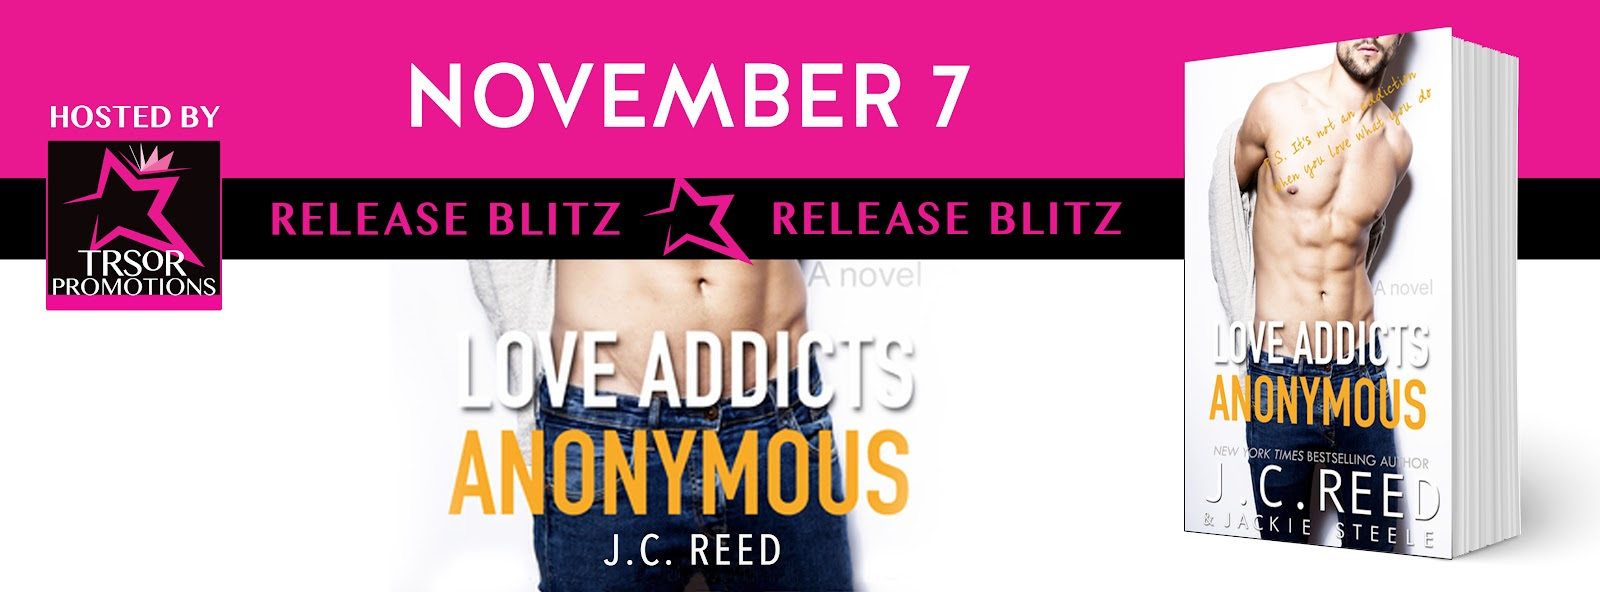 LOVE_ADDICTS_RELEASE_BLITZ.jpg